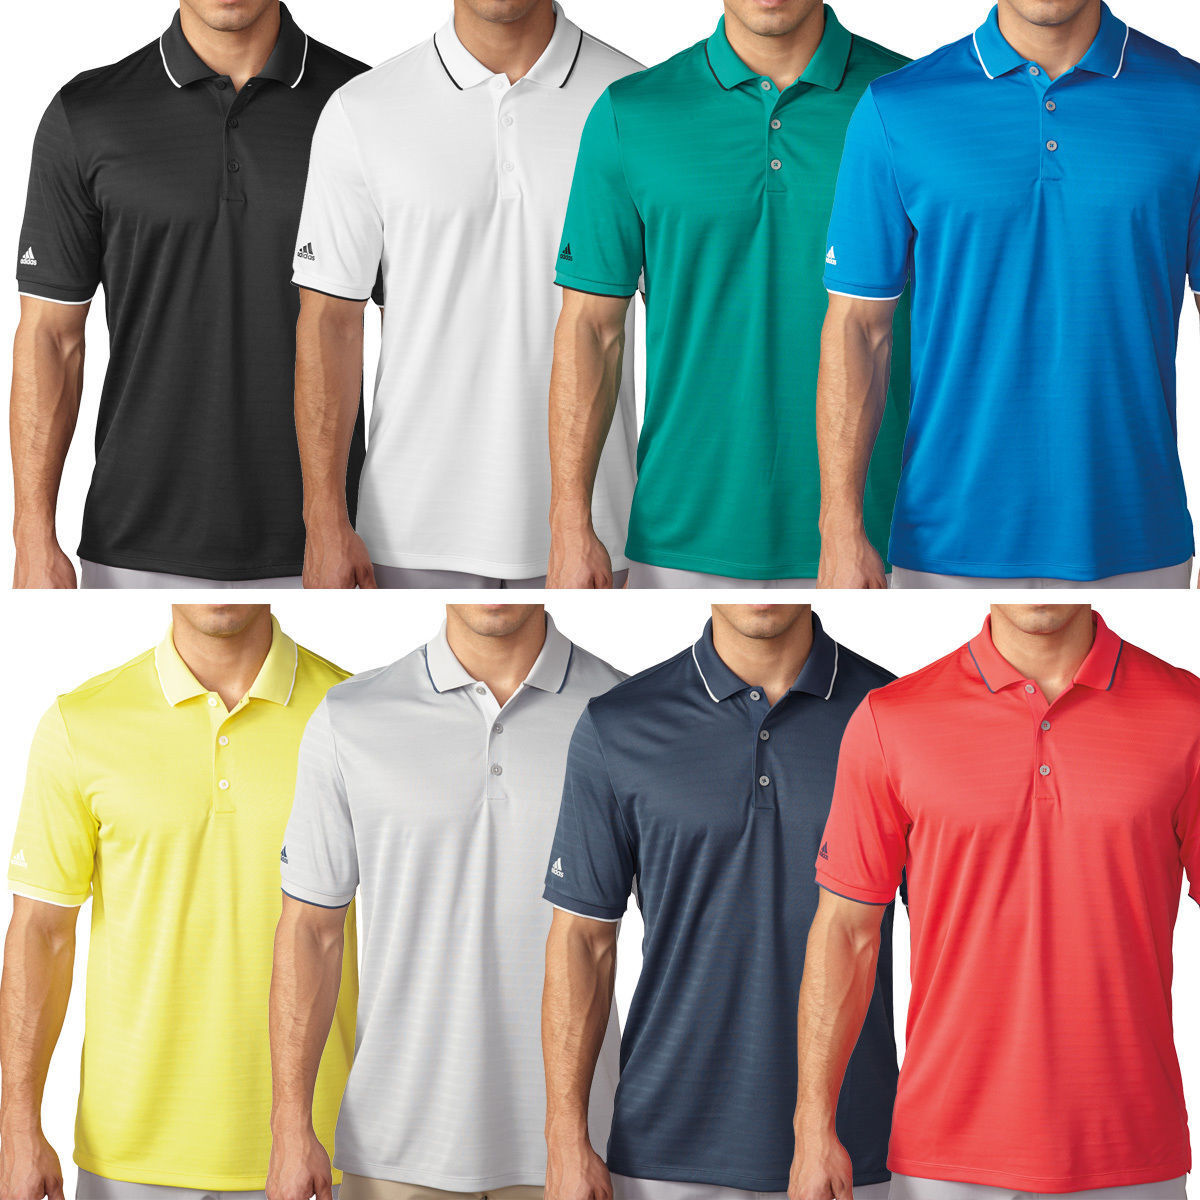 sports shoes c3693 aa6b3 Details about Adidas Golf Mens ClimaCool Tipped Club Performance Golf Polo  Shirt